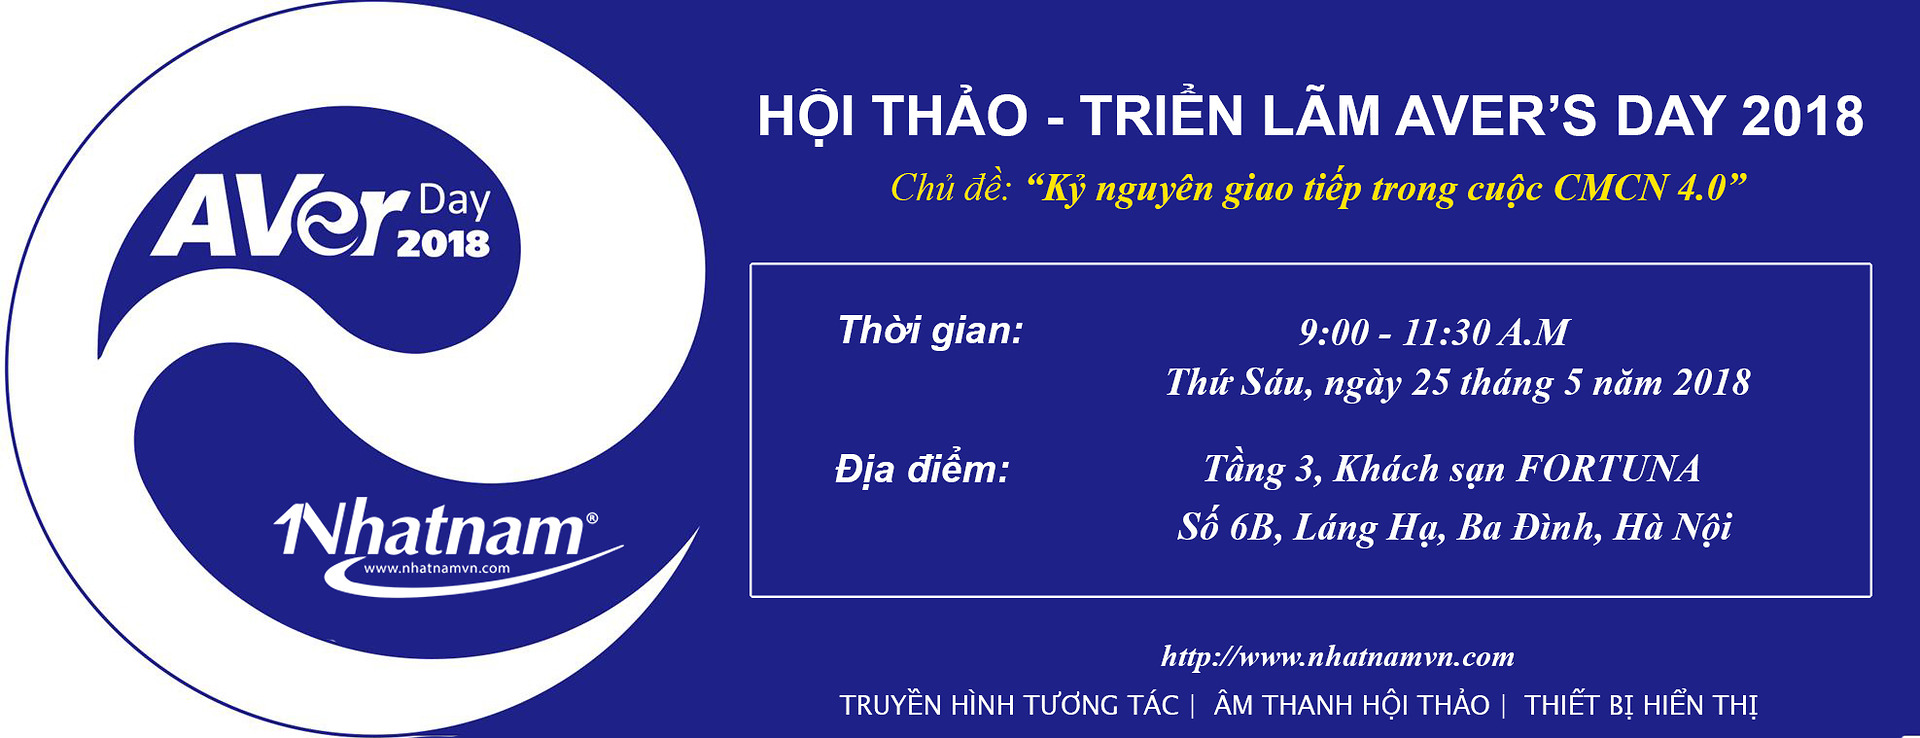 AVer's Day 2018: Kỷ nguyên giao tiếp trong cuộc CMCN 4.0